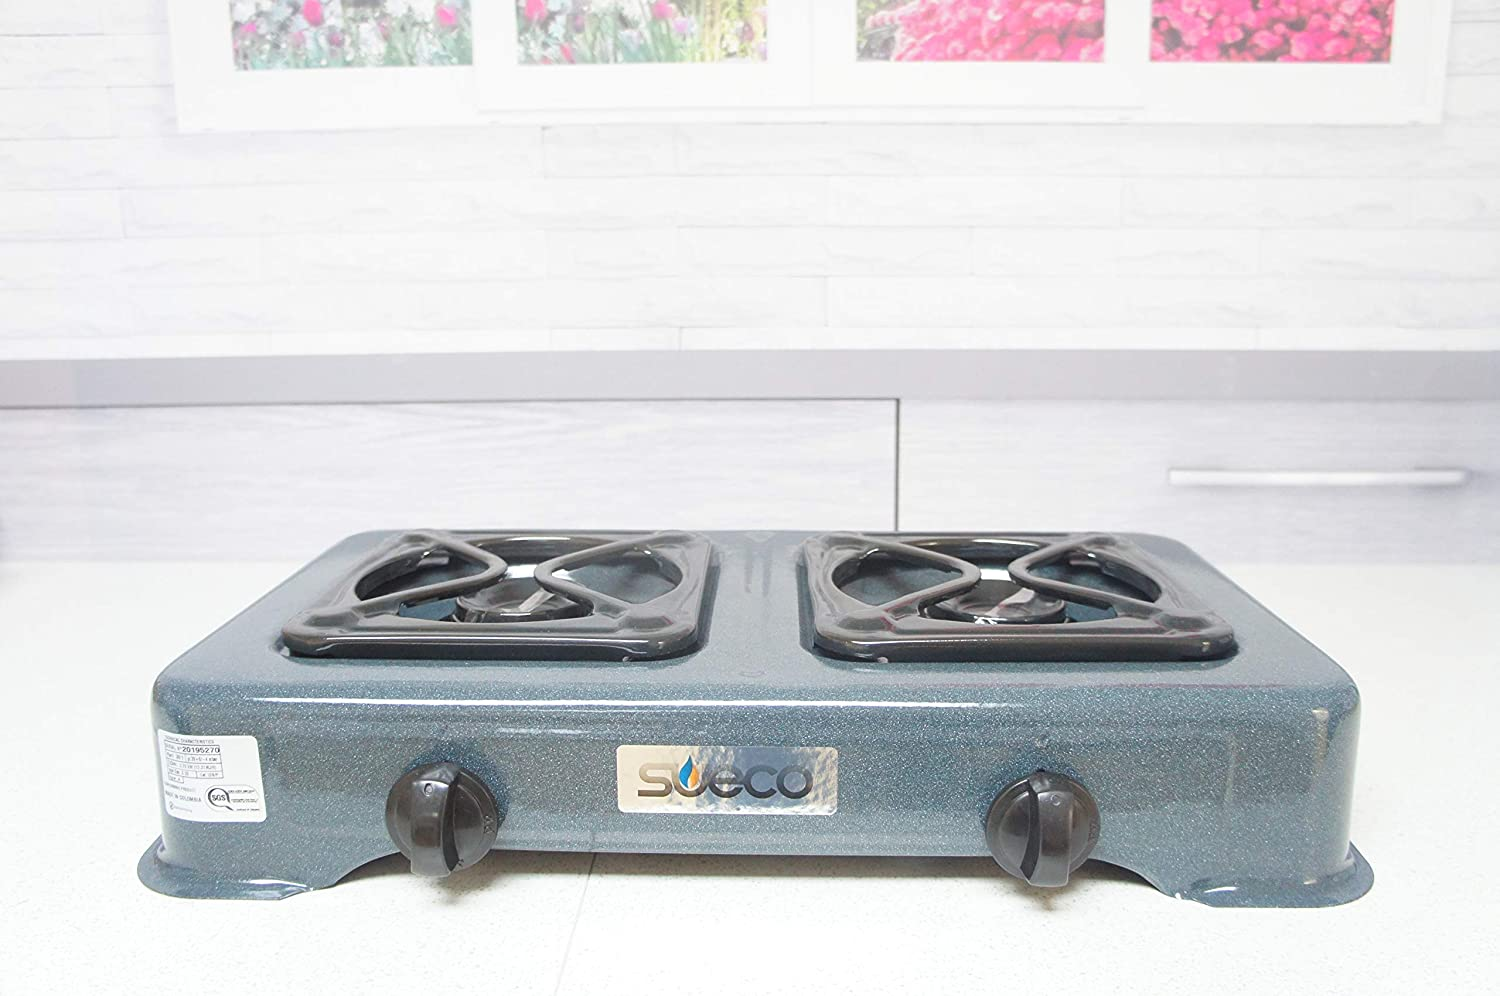 Sueco Double Portable Propane Gas Stove Large Burner With Hose Regulator